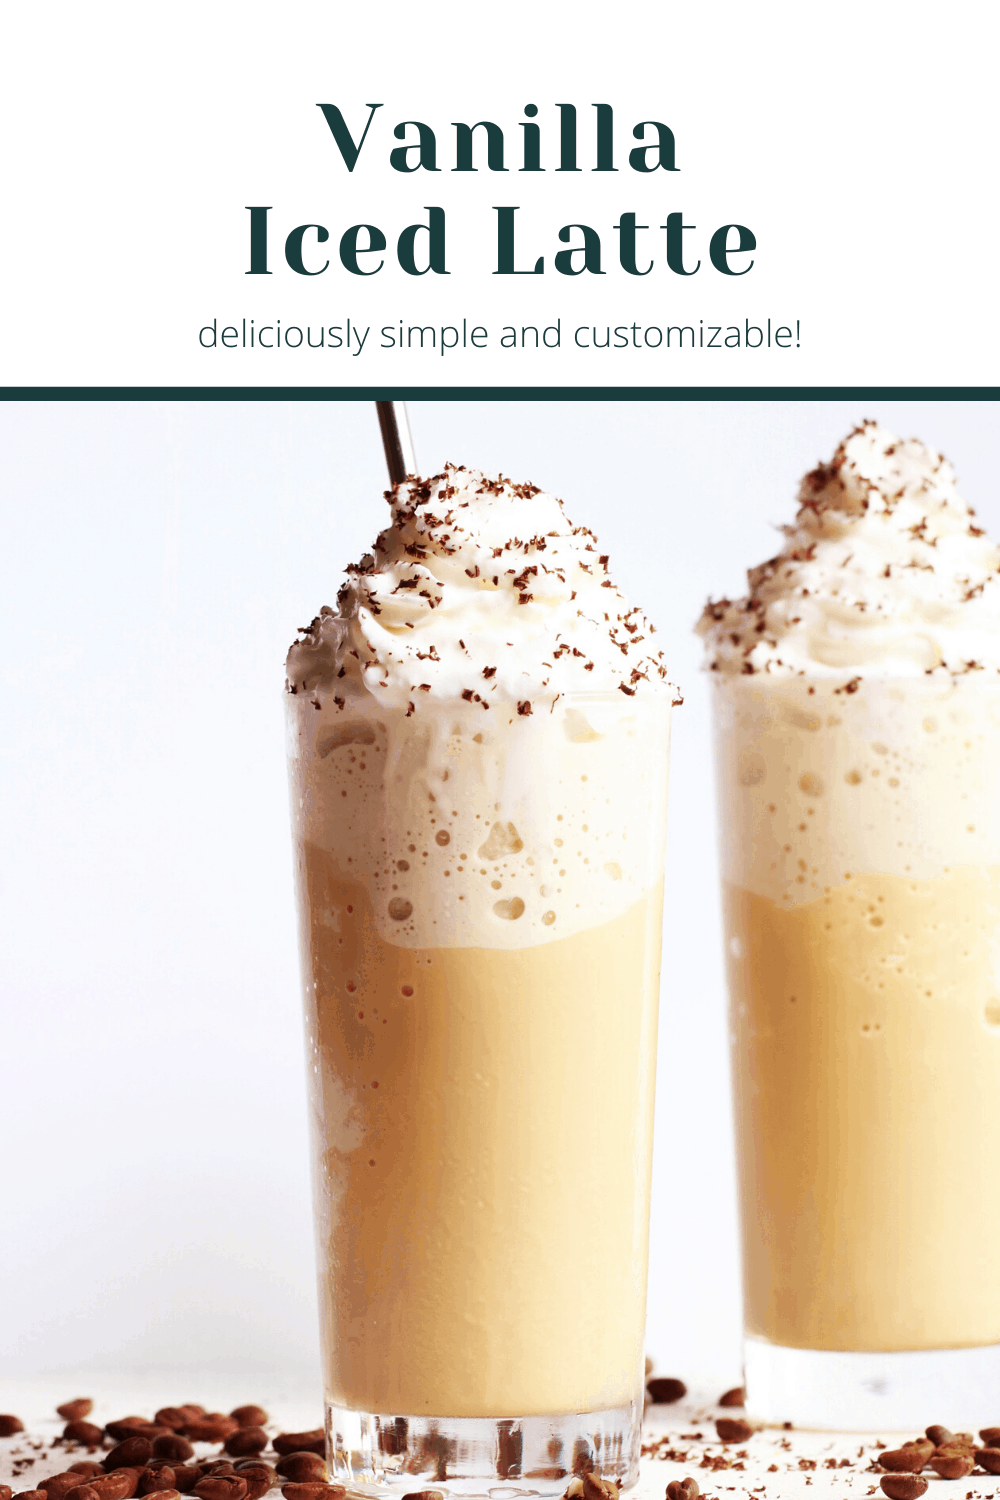 glasses filled with vanilla iced latte, whipped cream and grated chocolate pinterest image